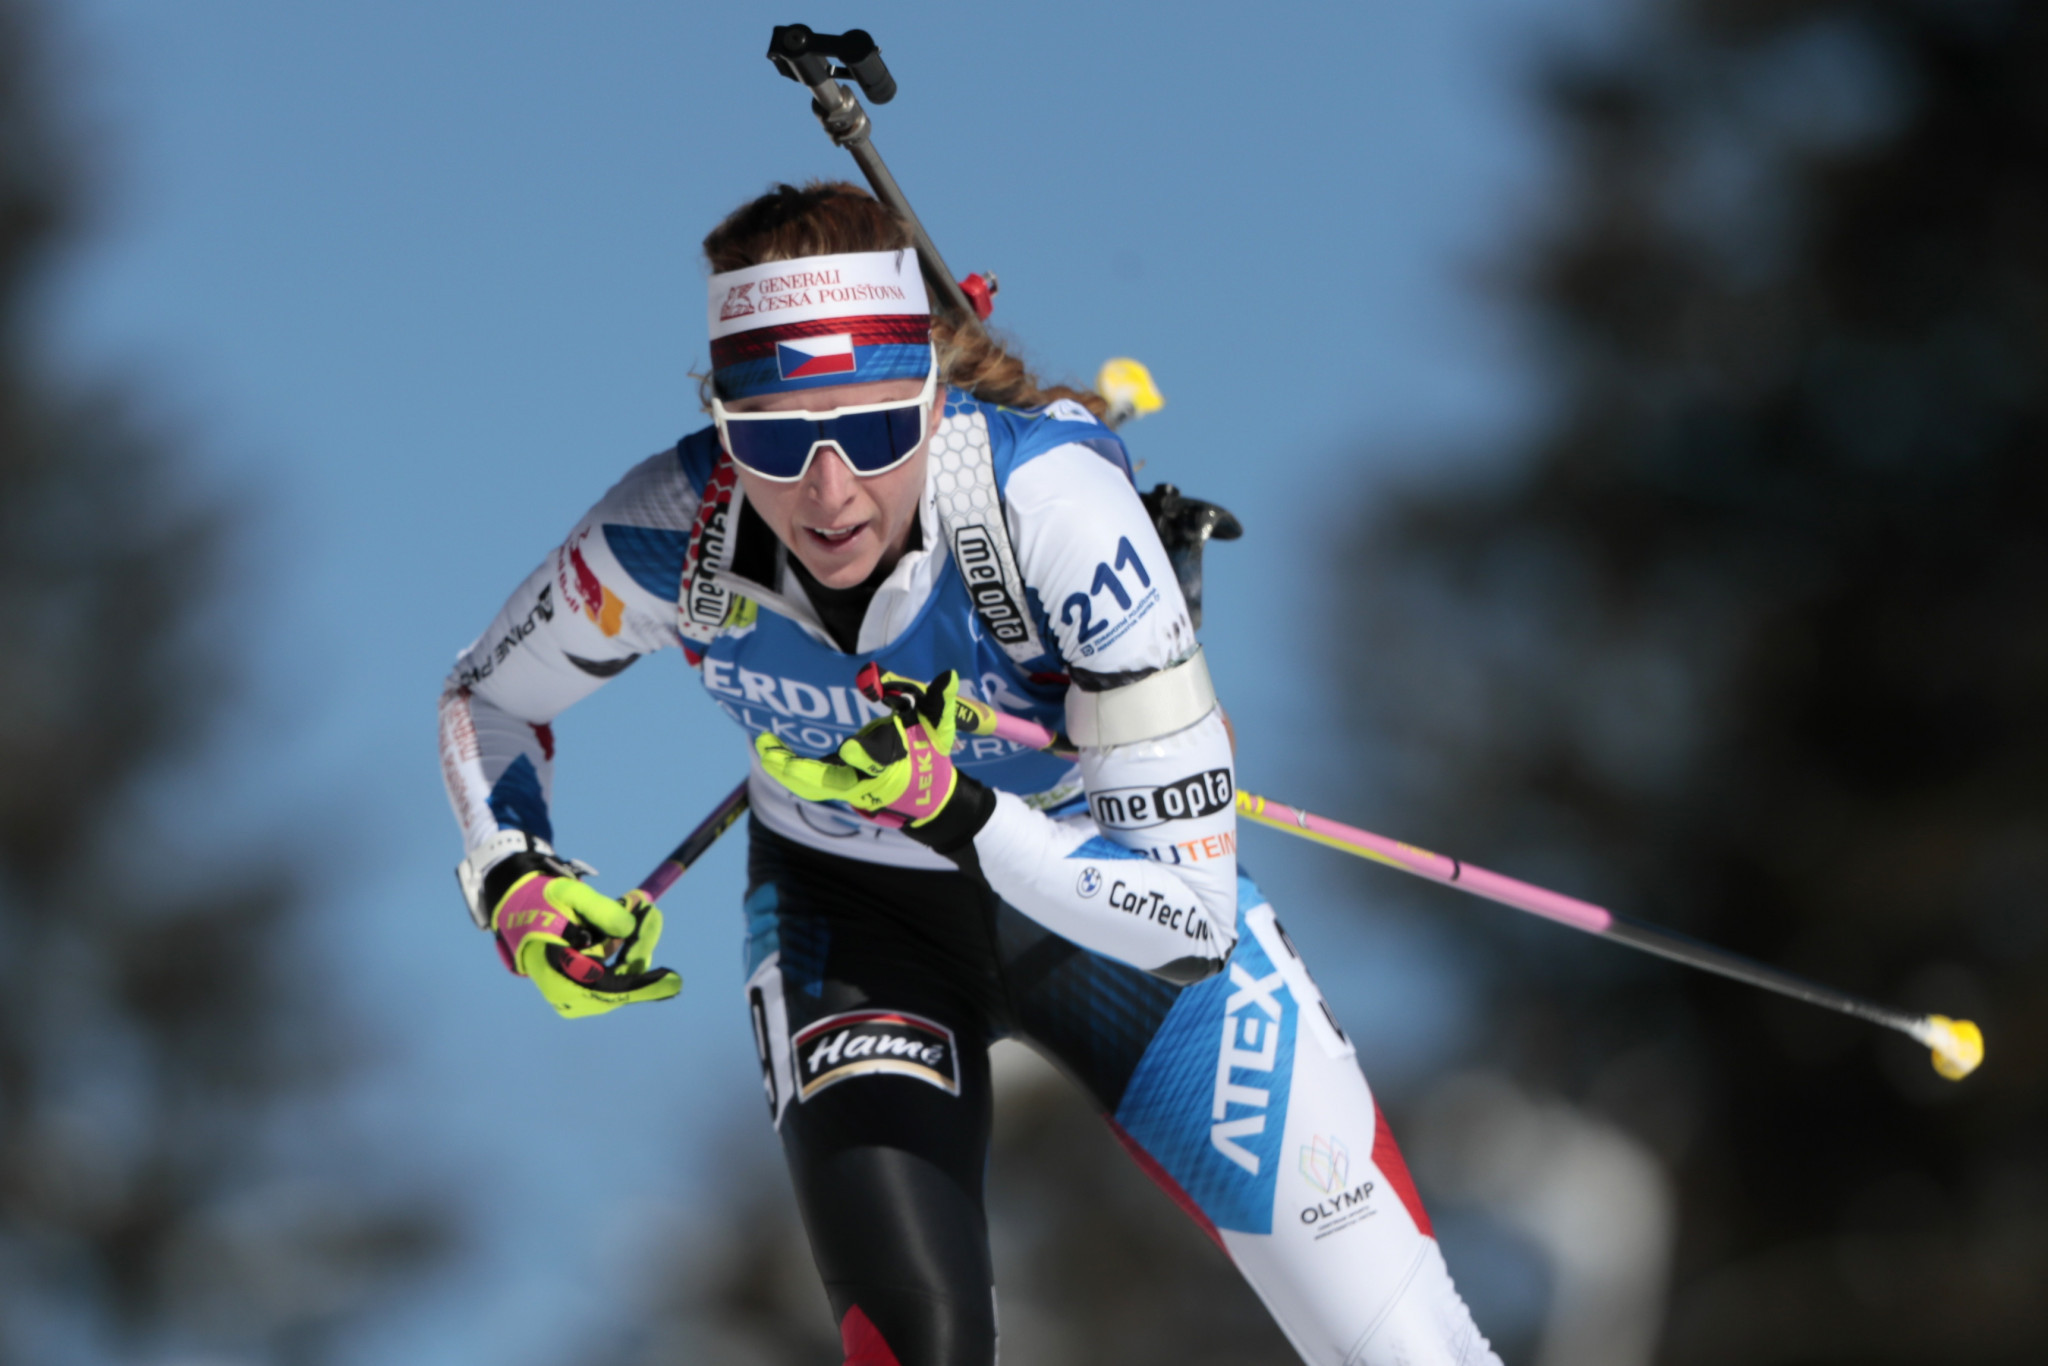 Czech Republic to lead the charge at home IBU Summer Biathlon World Championships